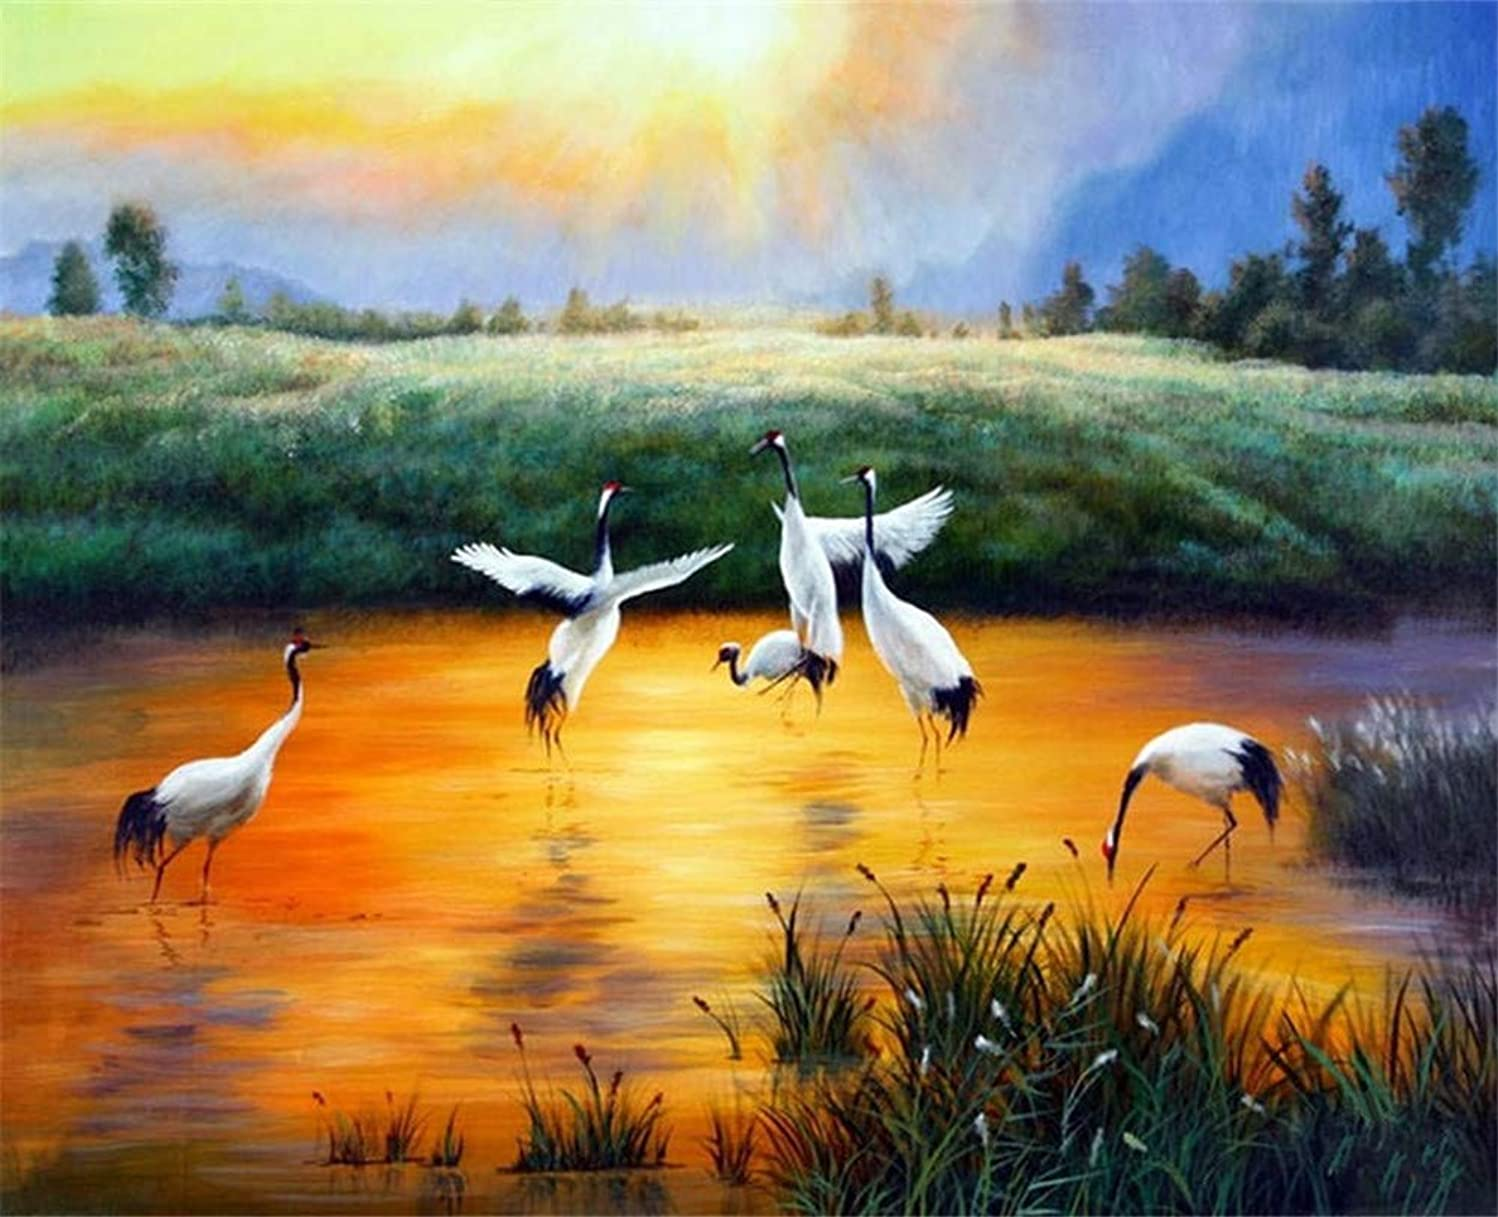 DIY Oil Painting kit, Paint by Numbers kit for Kids and Adults - Cranes 16x20 inches (Framed)